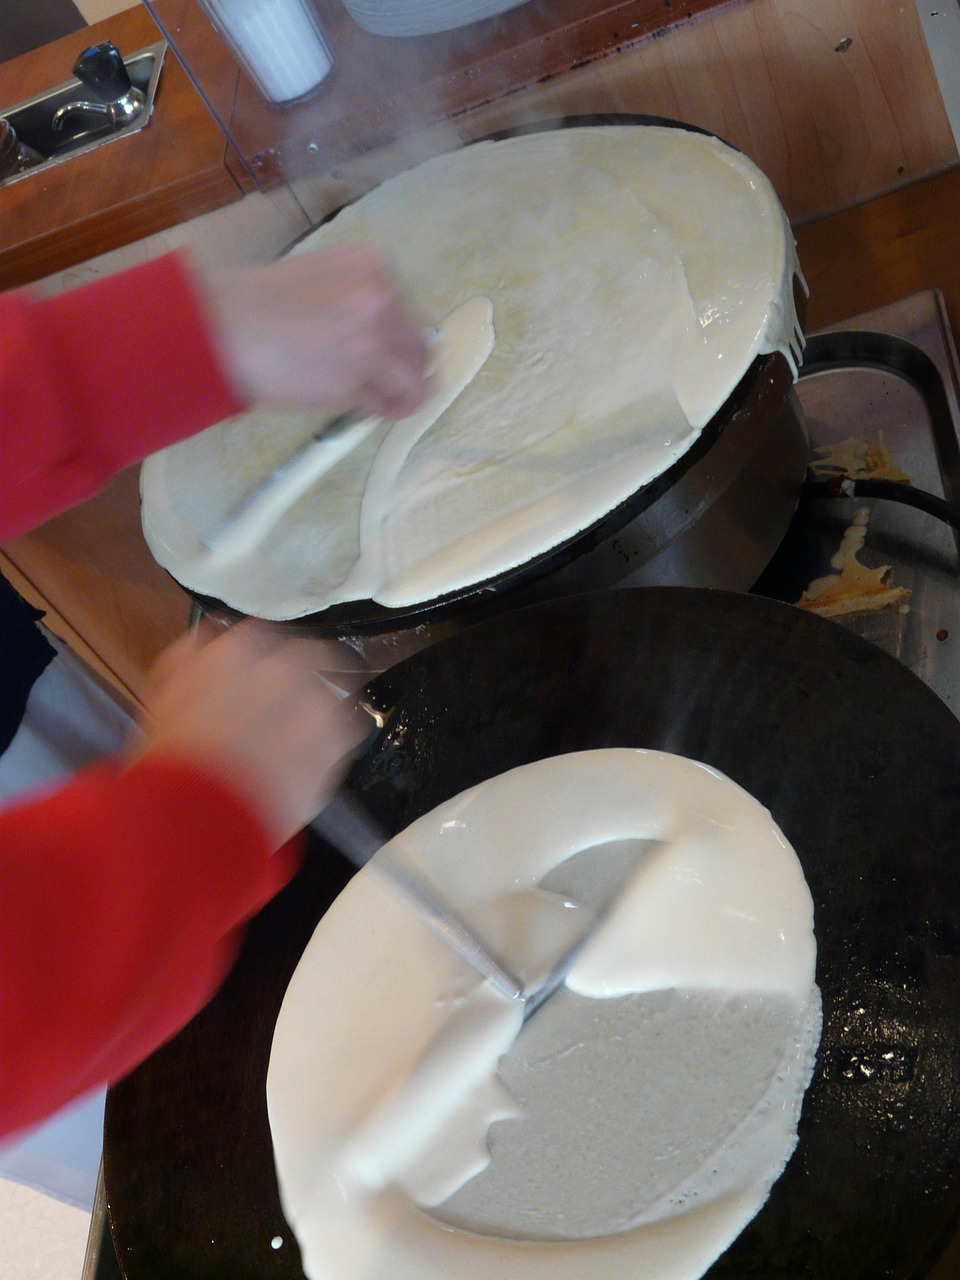 crepe pancake cook free photo